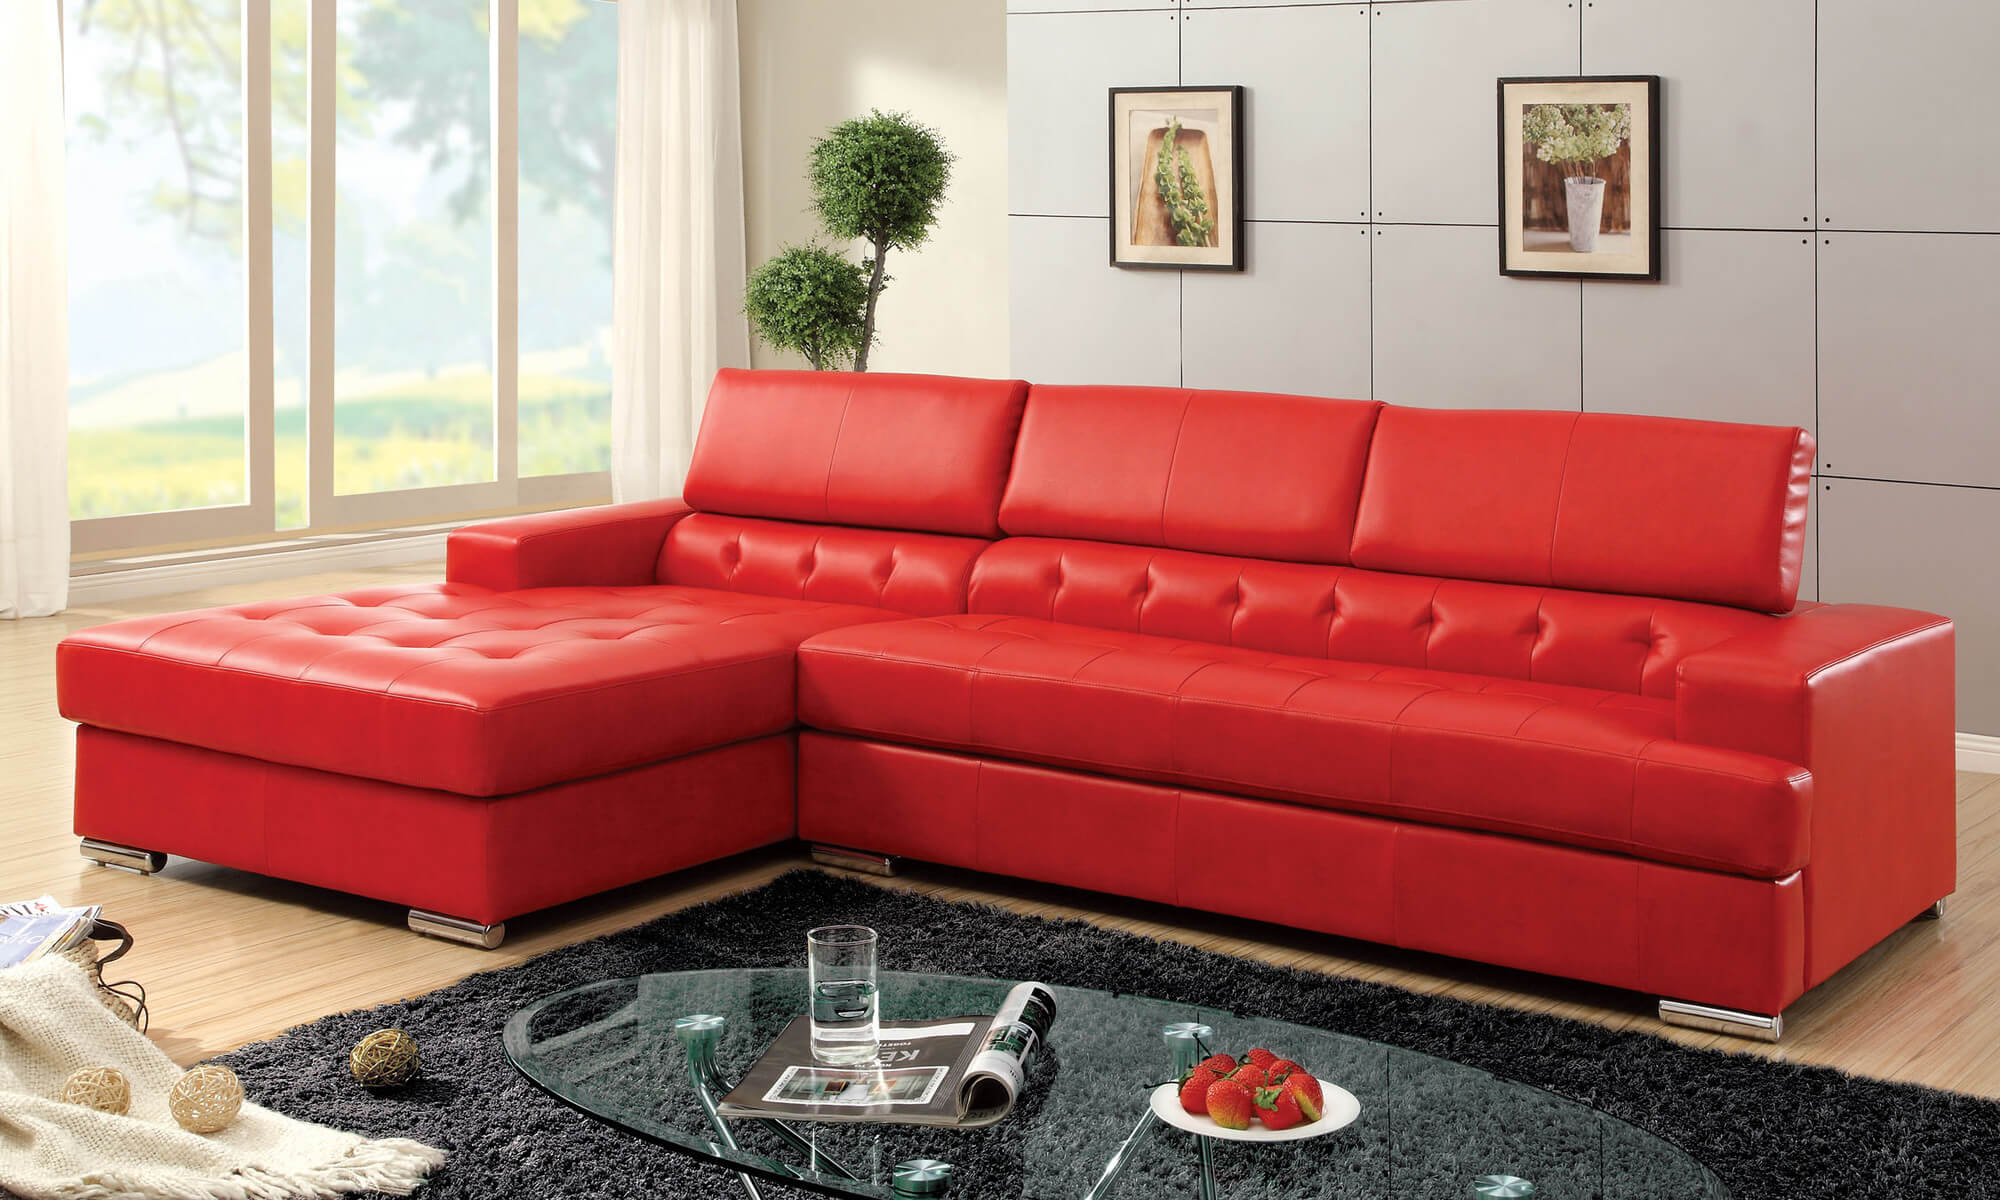 Designed in classic red color that complements any contemporary home, this sectional sofa set is wonderfully versatile. 18 Stylish Modern Red Sectional Sofas